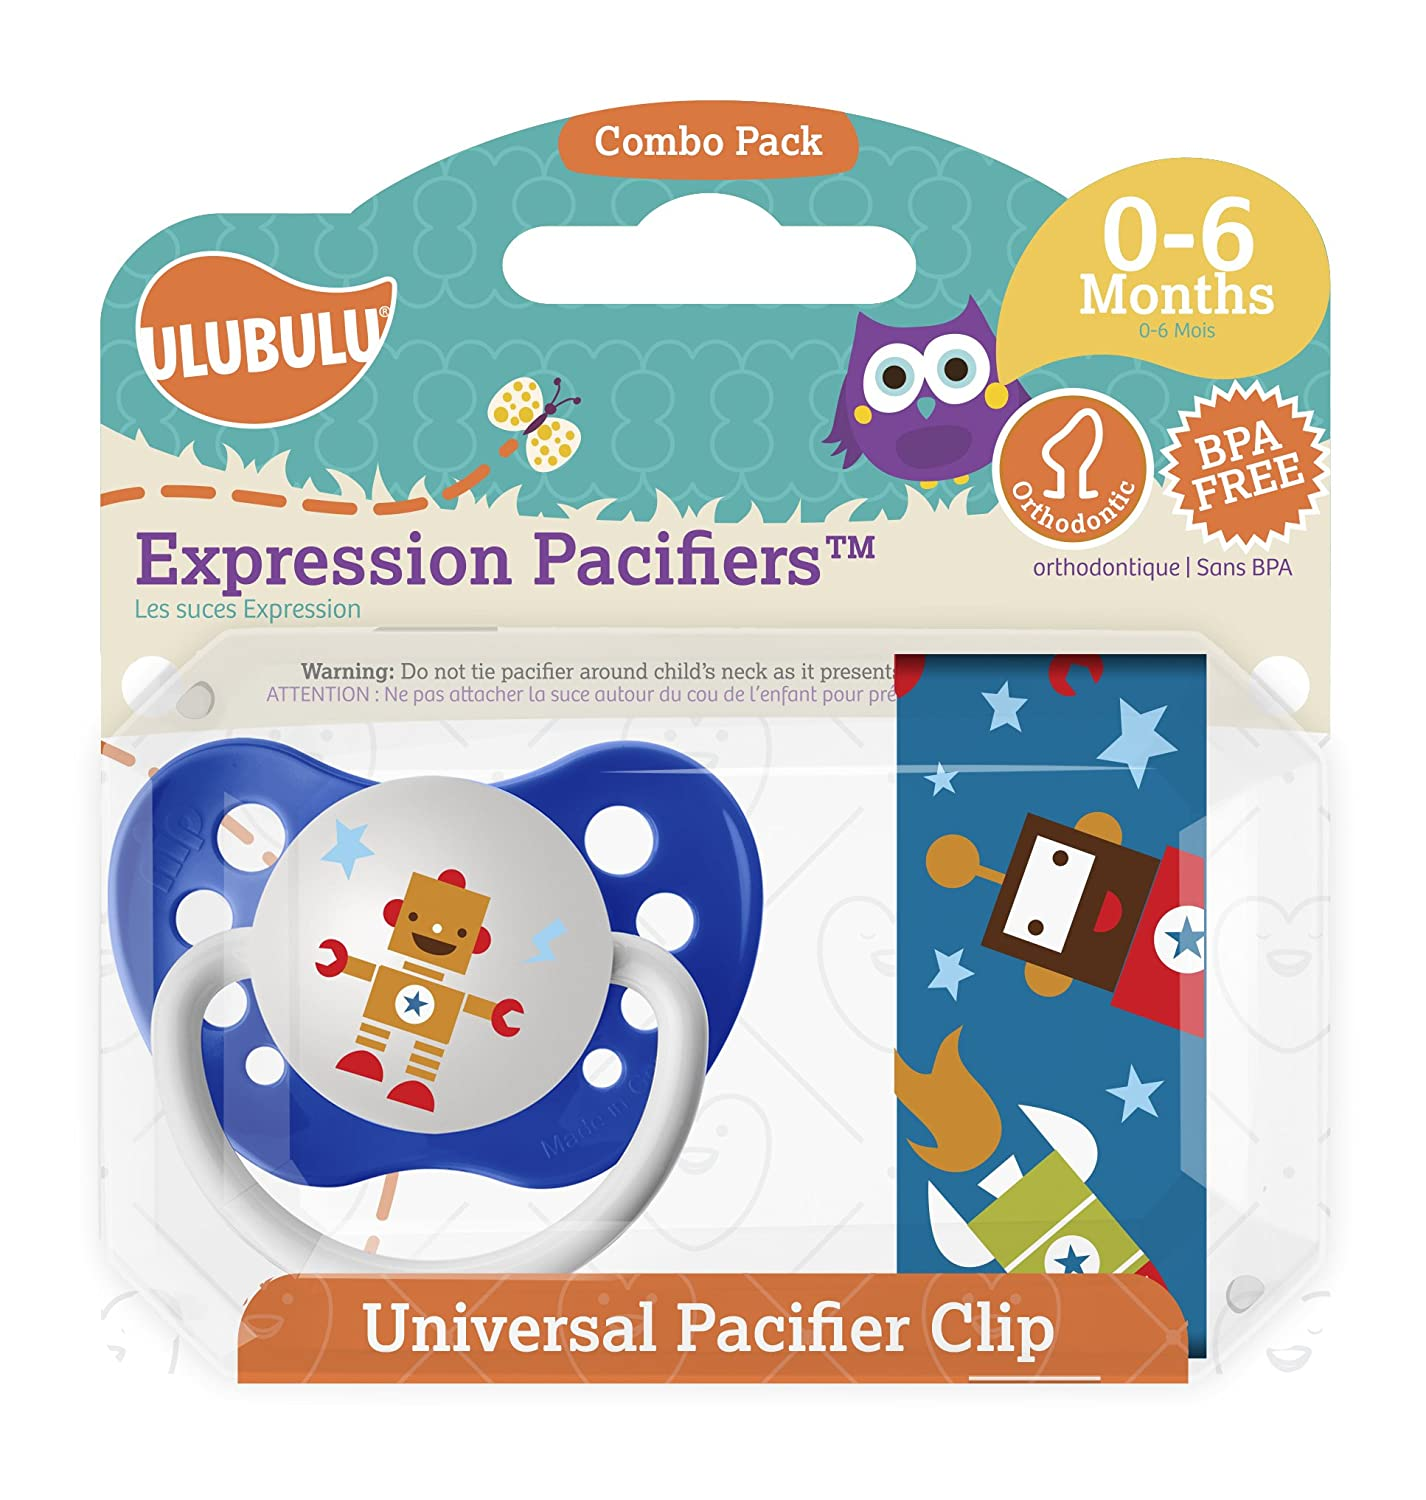 Ulubulu Robonaut Pacifier and Clip Combo Set, Blue, 0-6 Months MP-08-99-H-2-003